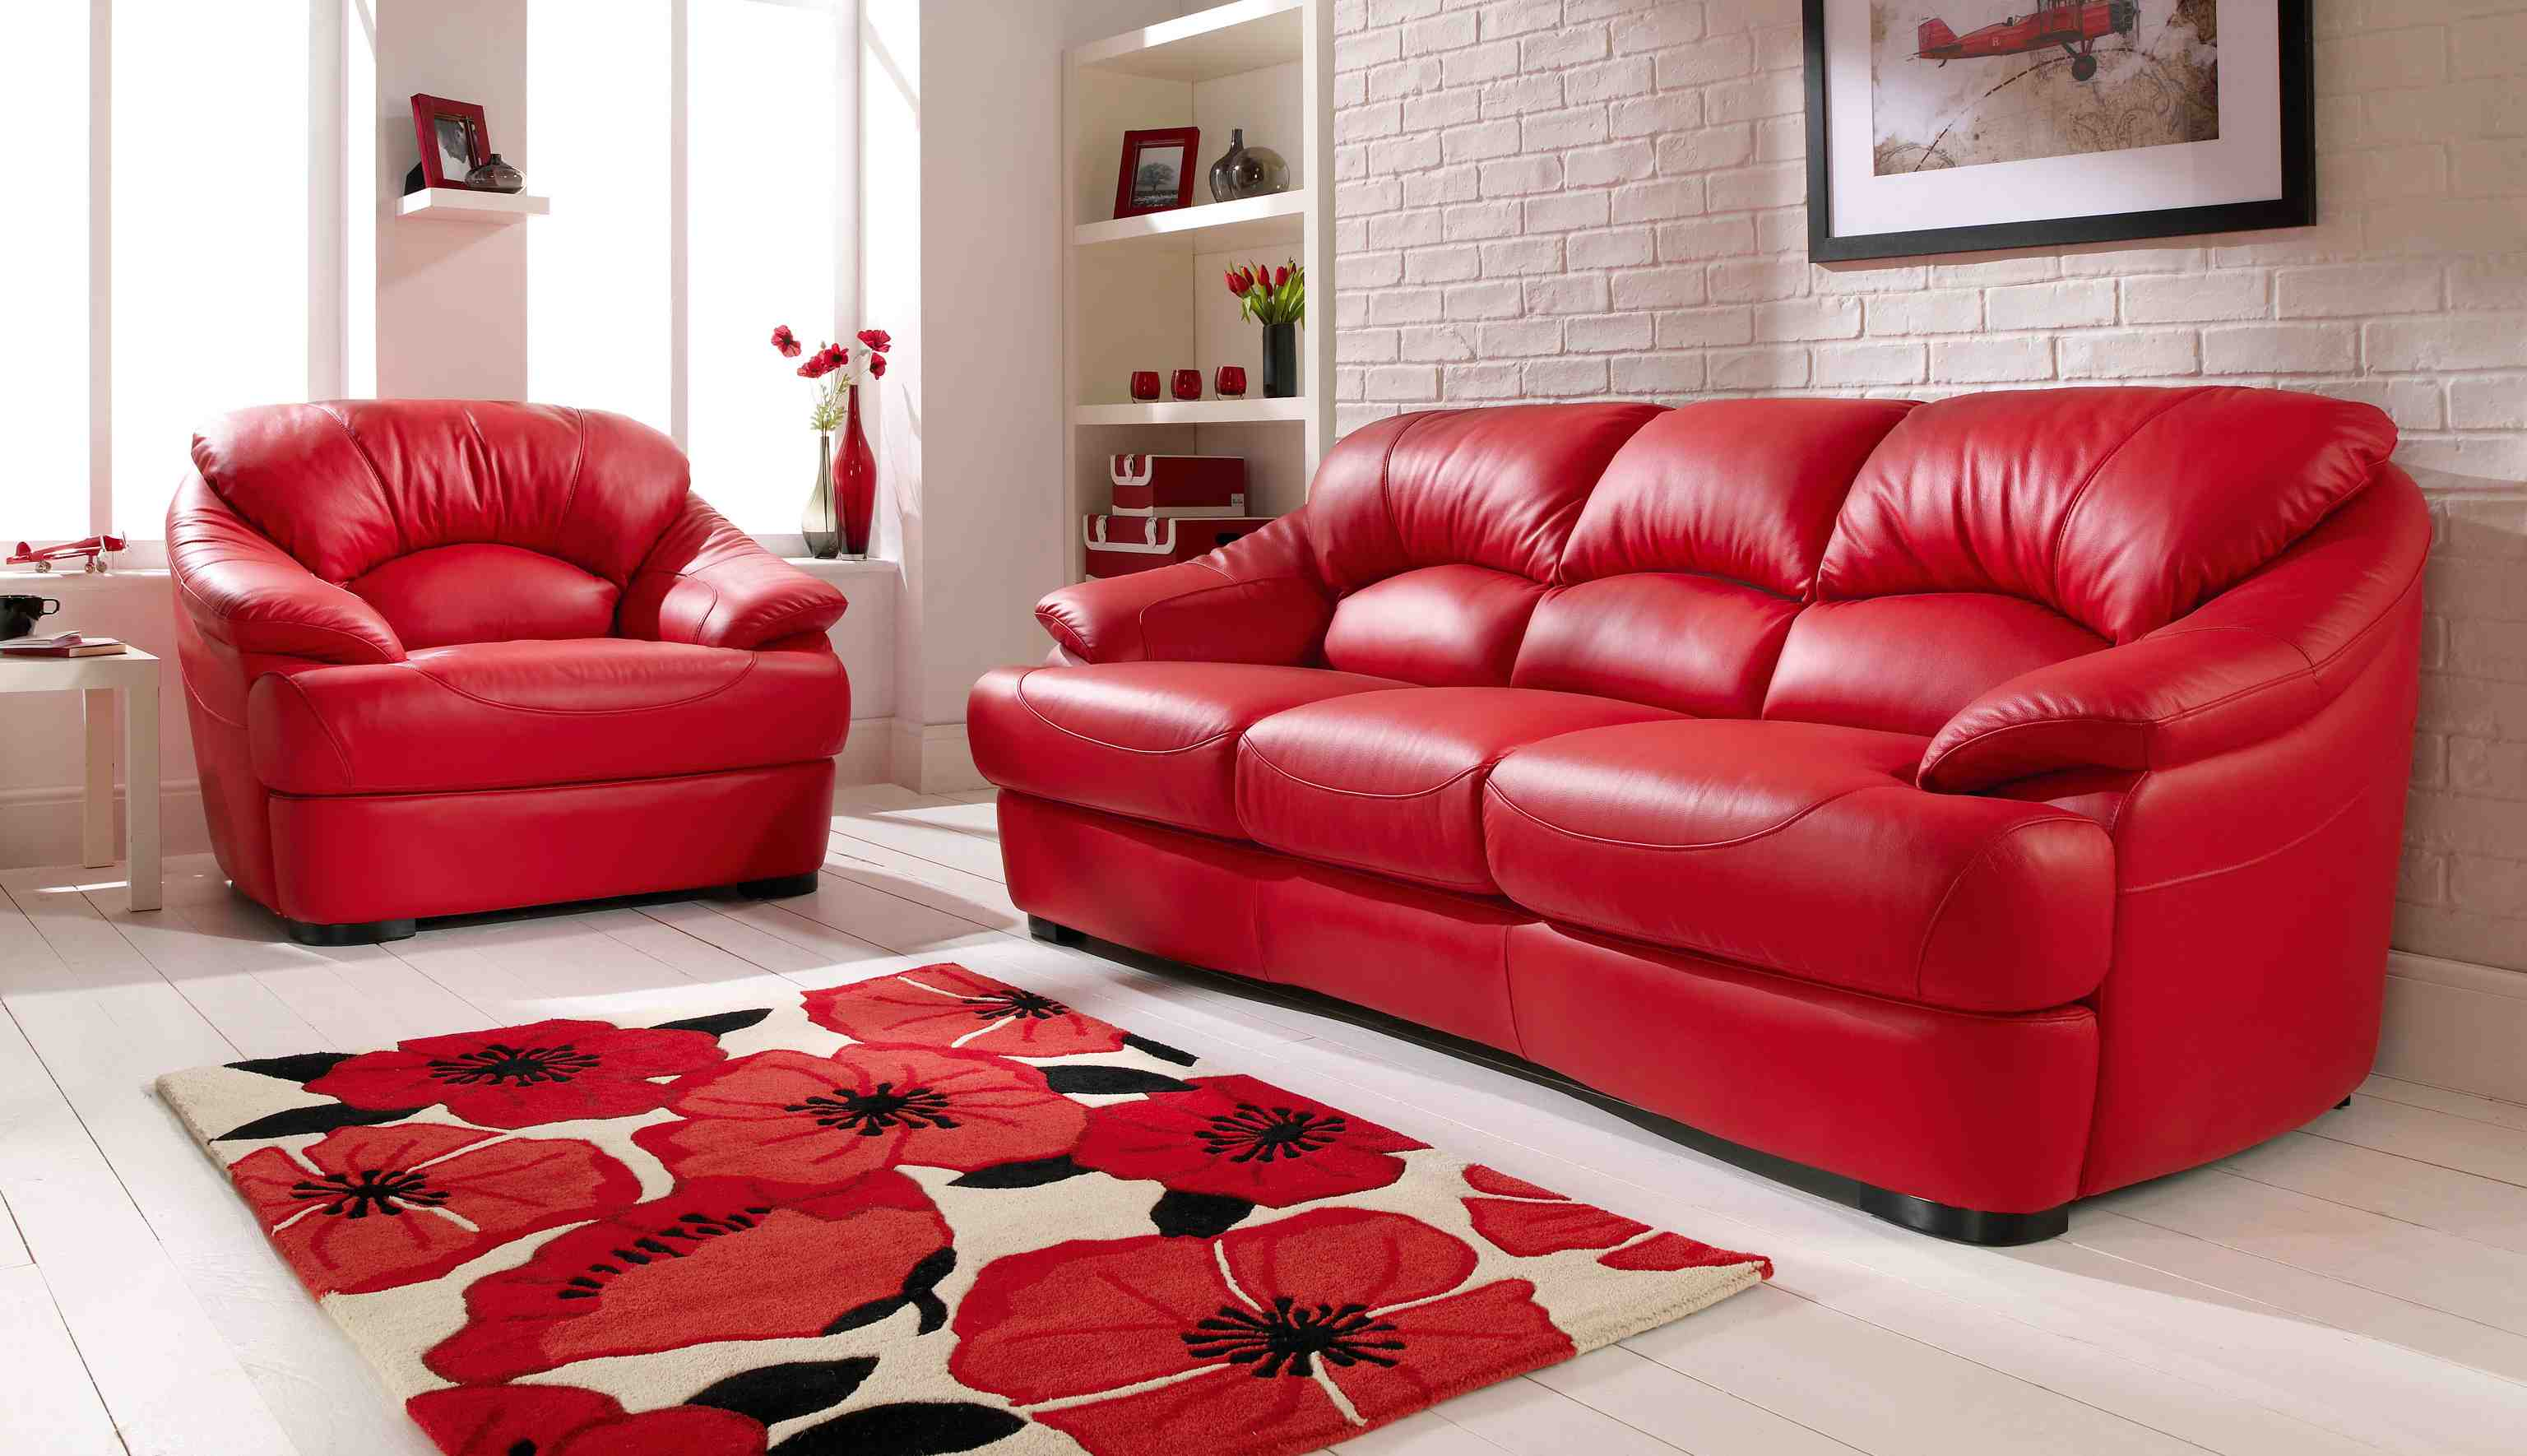 Super Attractive Red Leather Sofa For Interior Living Room Alphanode Cool Chair Designs And Ideas Alphanodeonline